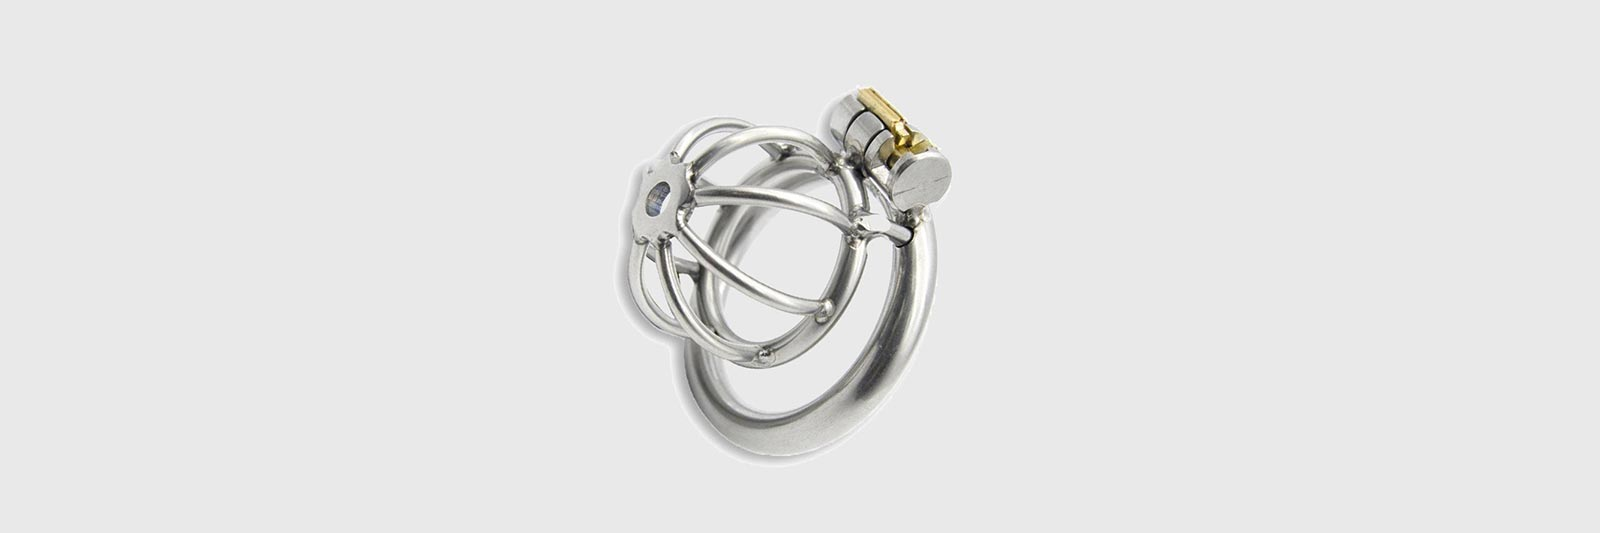 The smallest chastity cages for kinky bdsm play